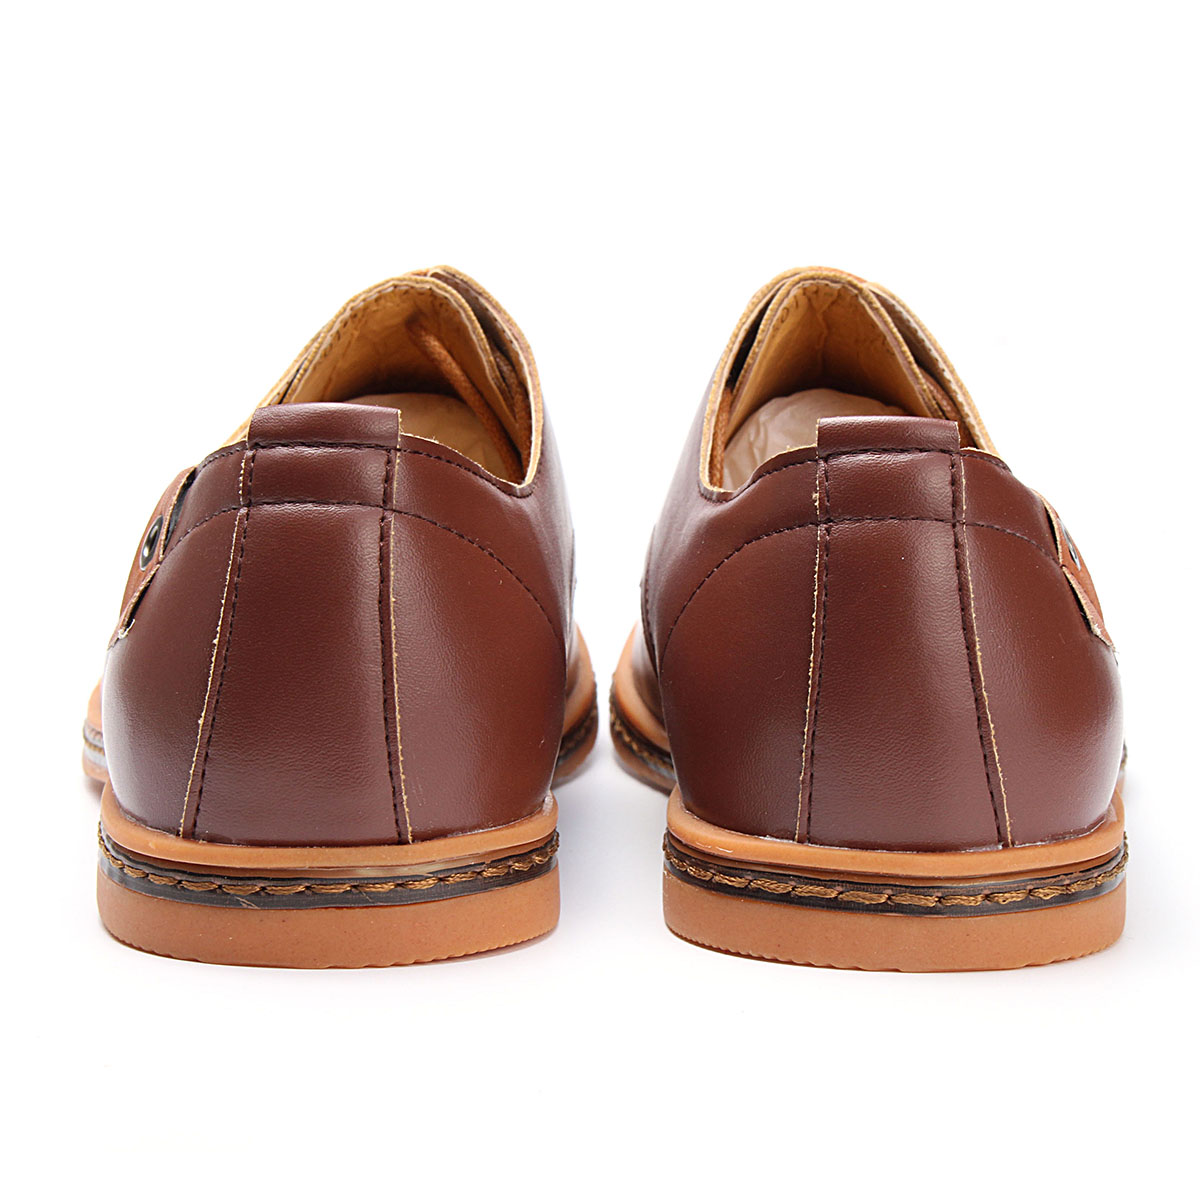 homme souliers d contract chaussure bureau habill sabots sneakers cuir mariage ebay. Black Bedroom Furniture Sets. Home Design Ideas